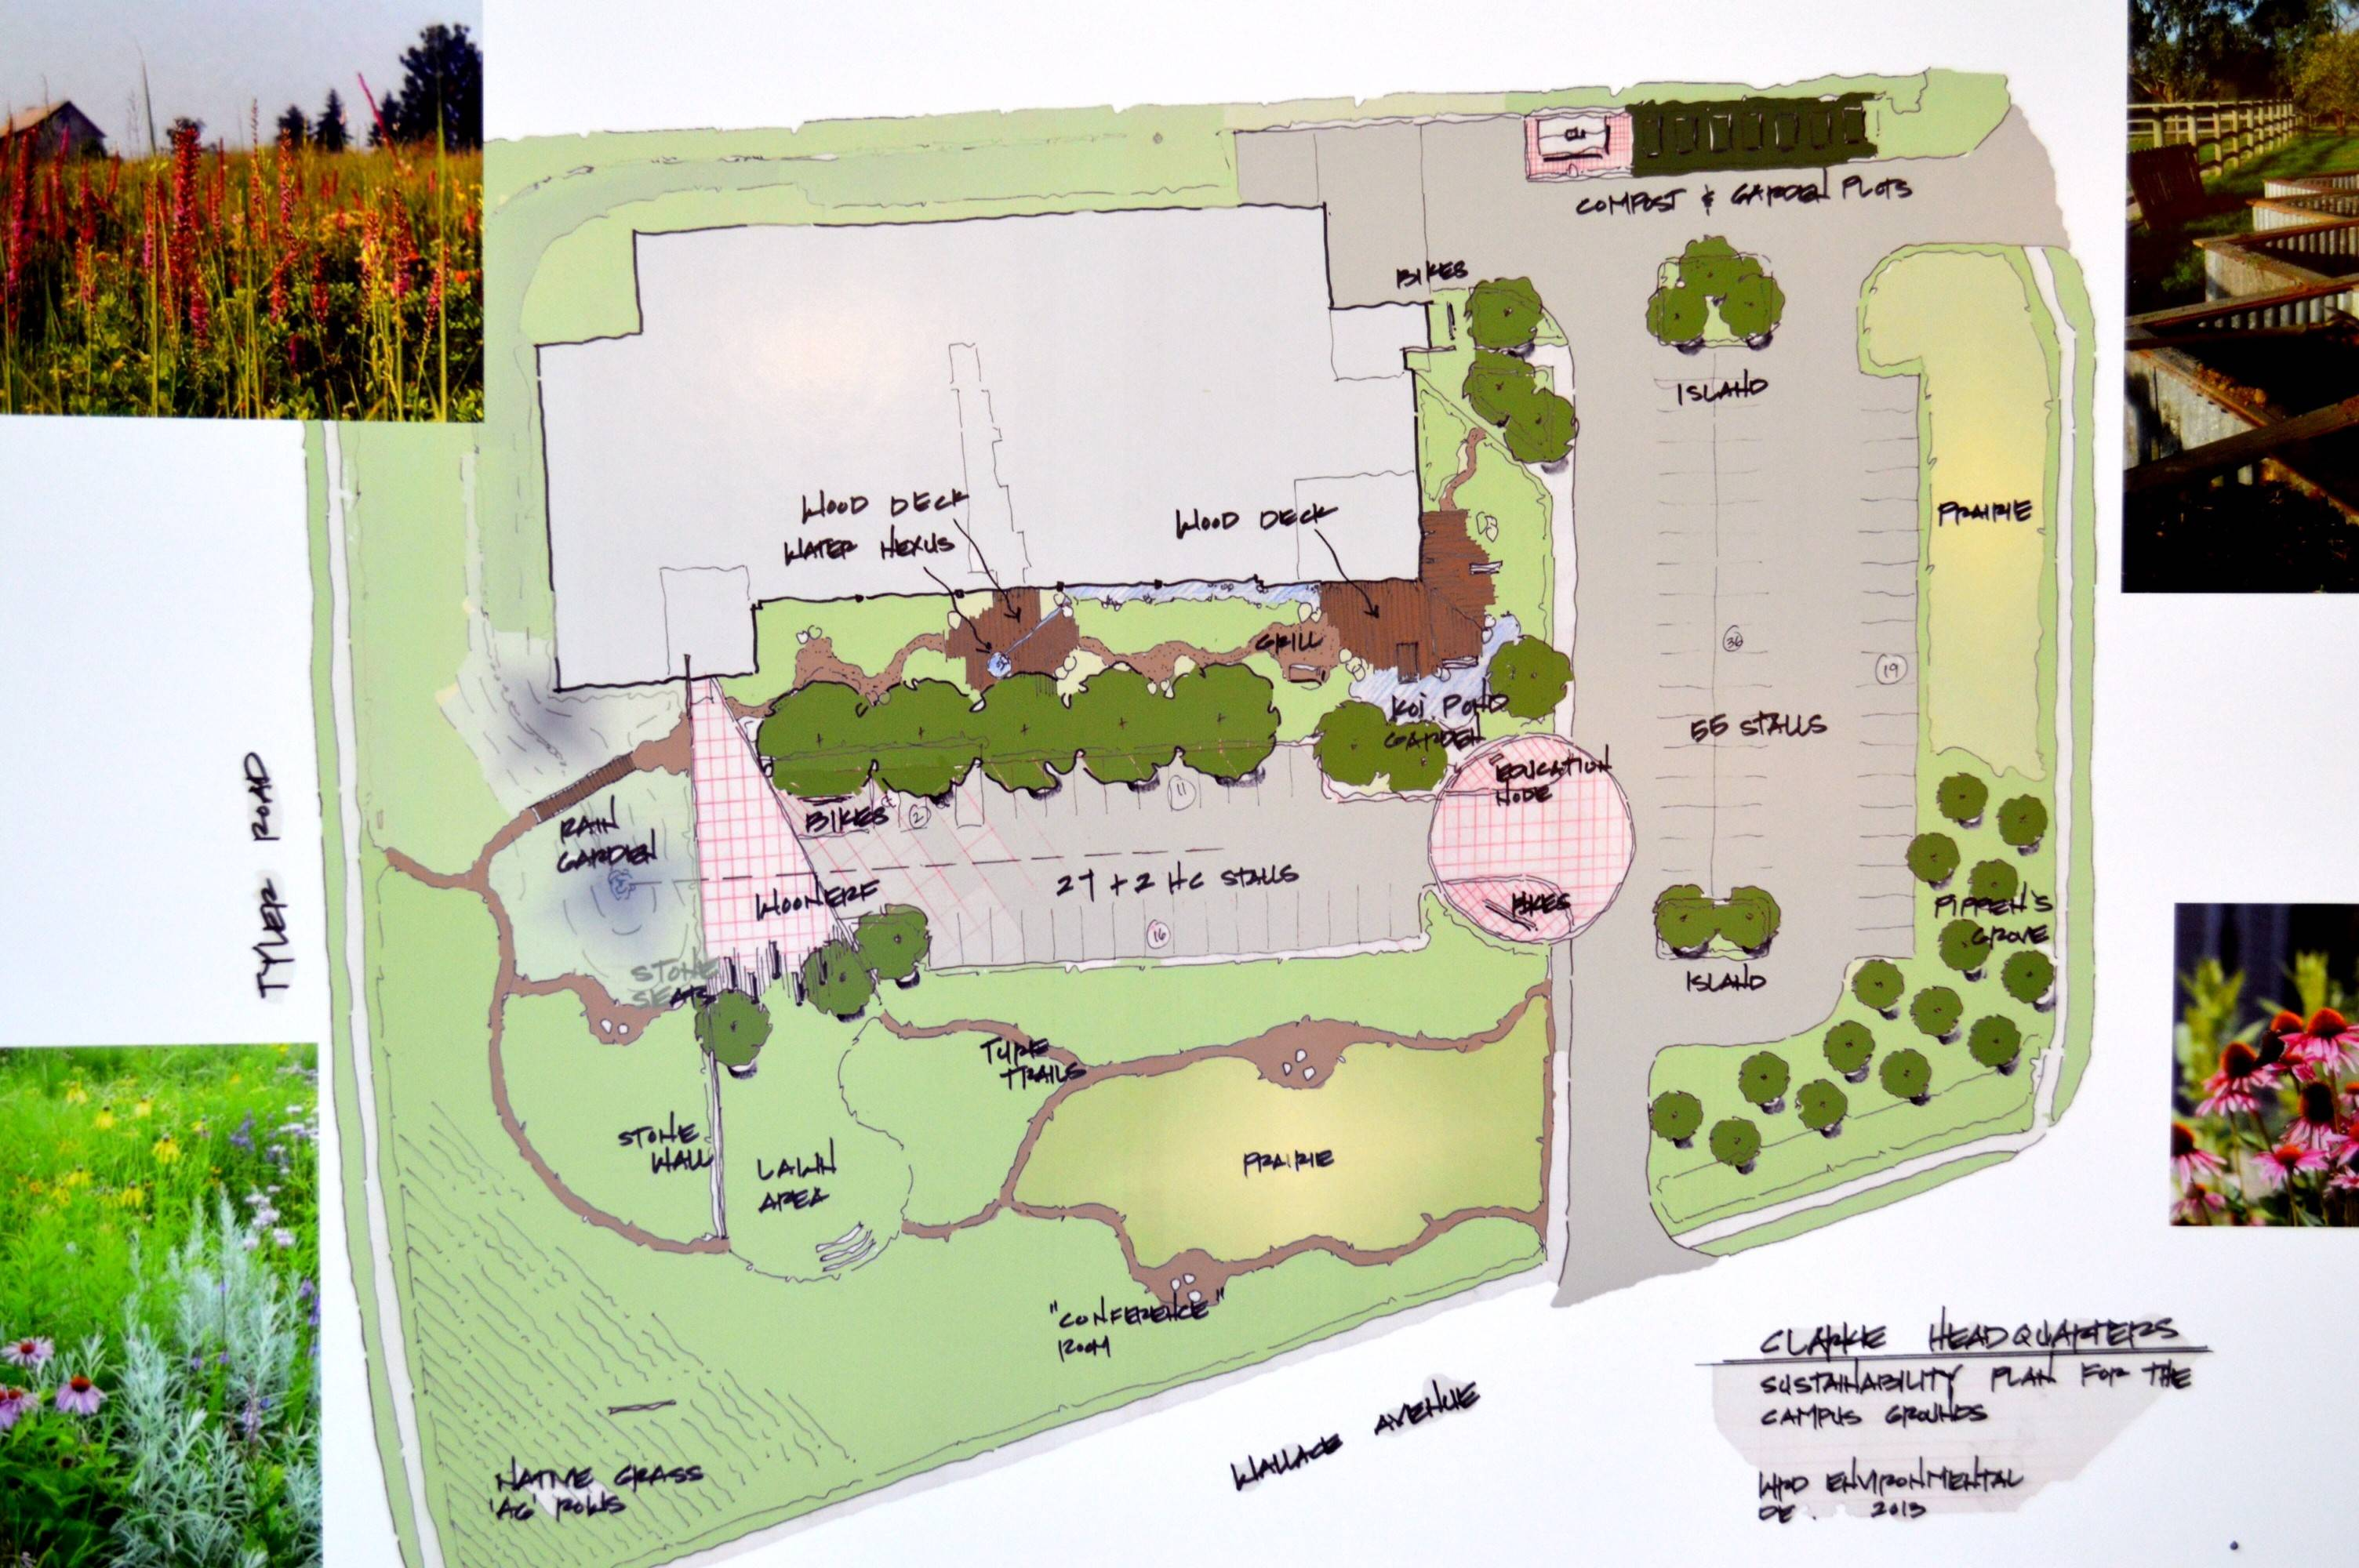 The site plan for the new Clarke headquarters in St. Charles shows intense landscaping, including a natural prairie and a fruit tree orchard.